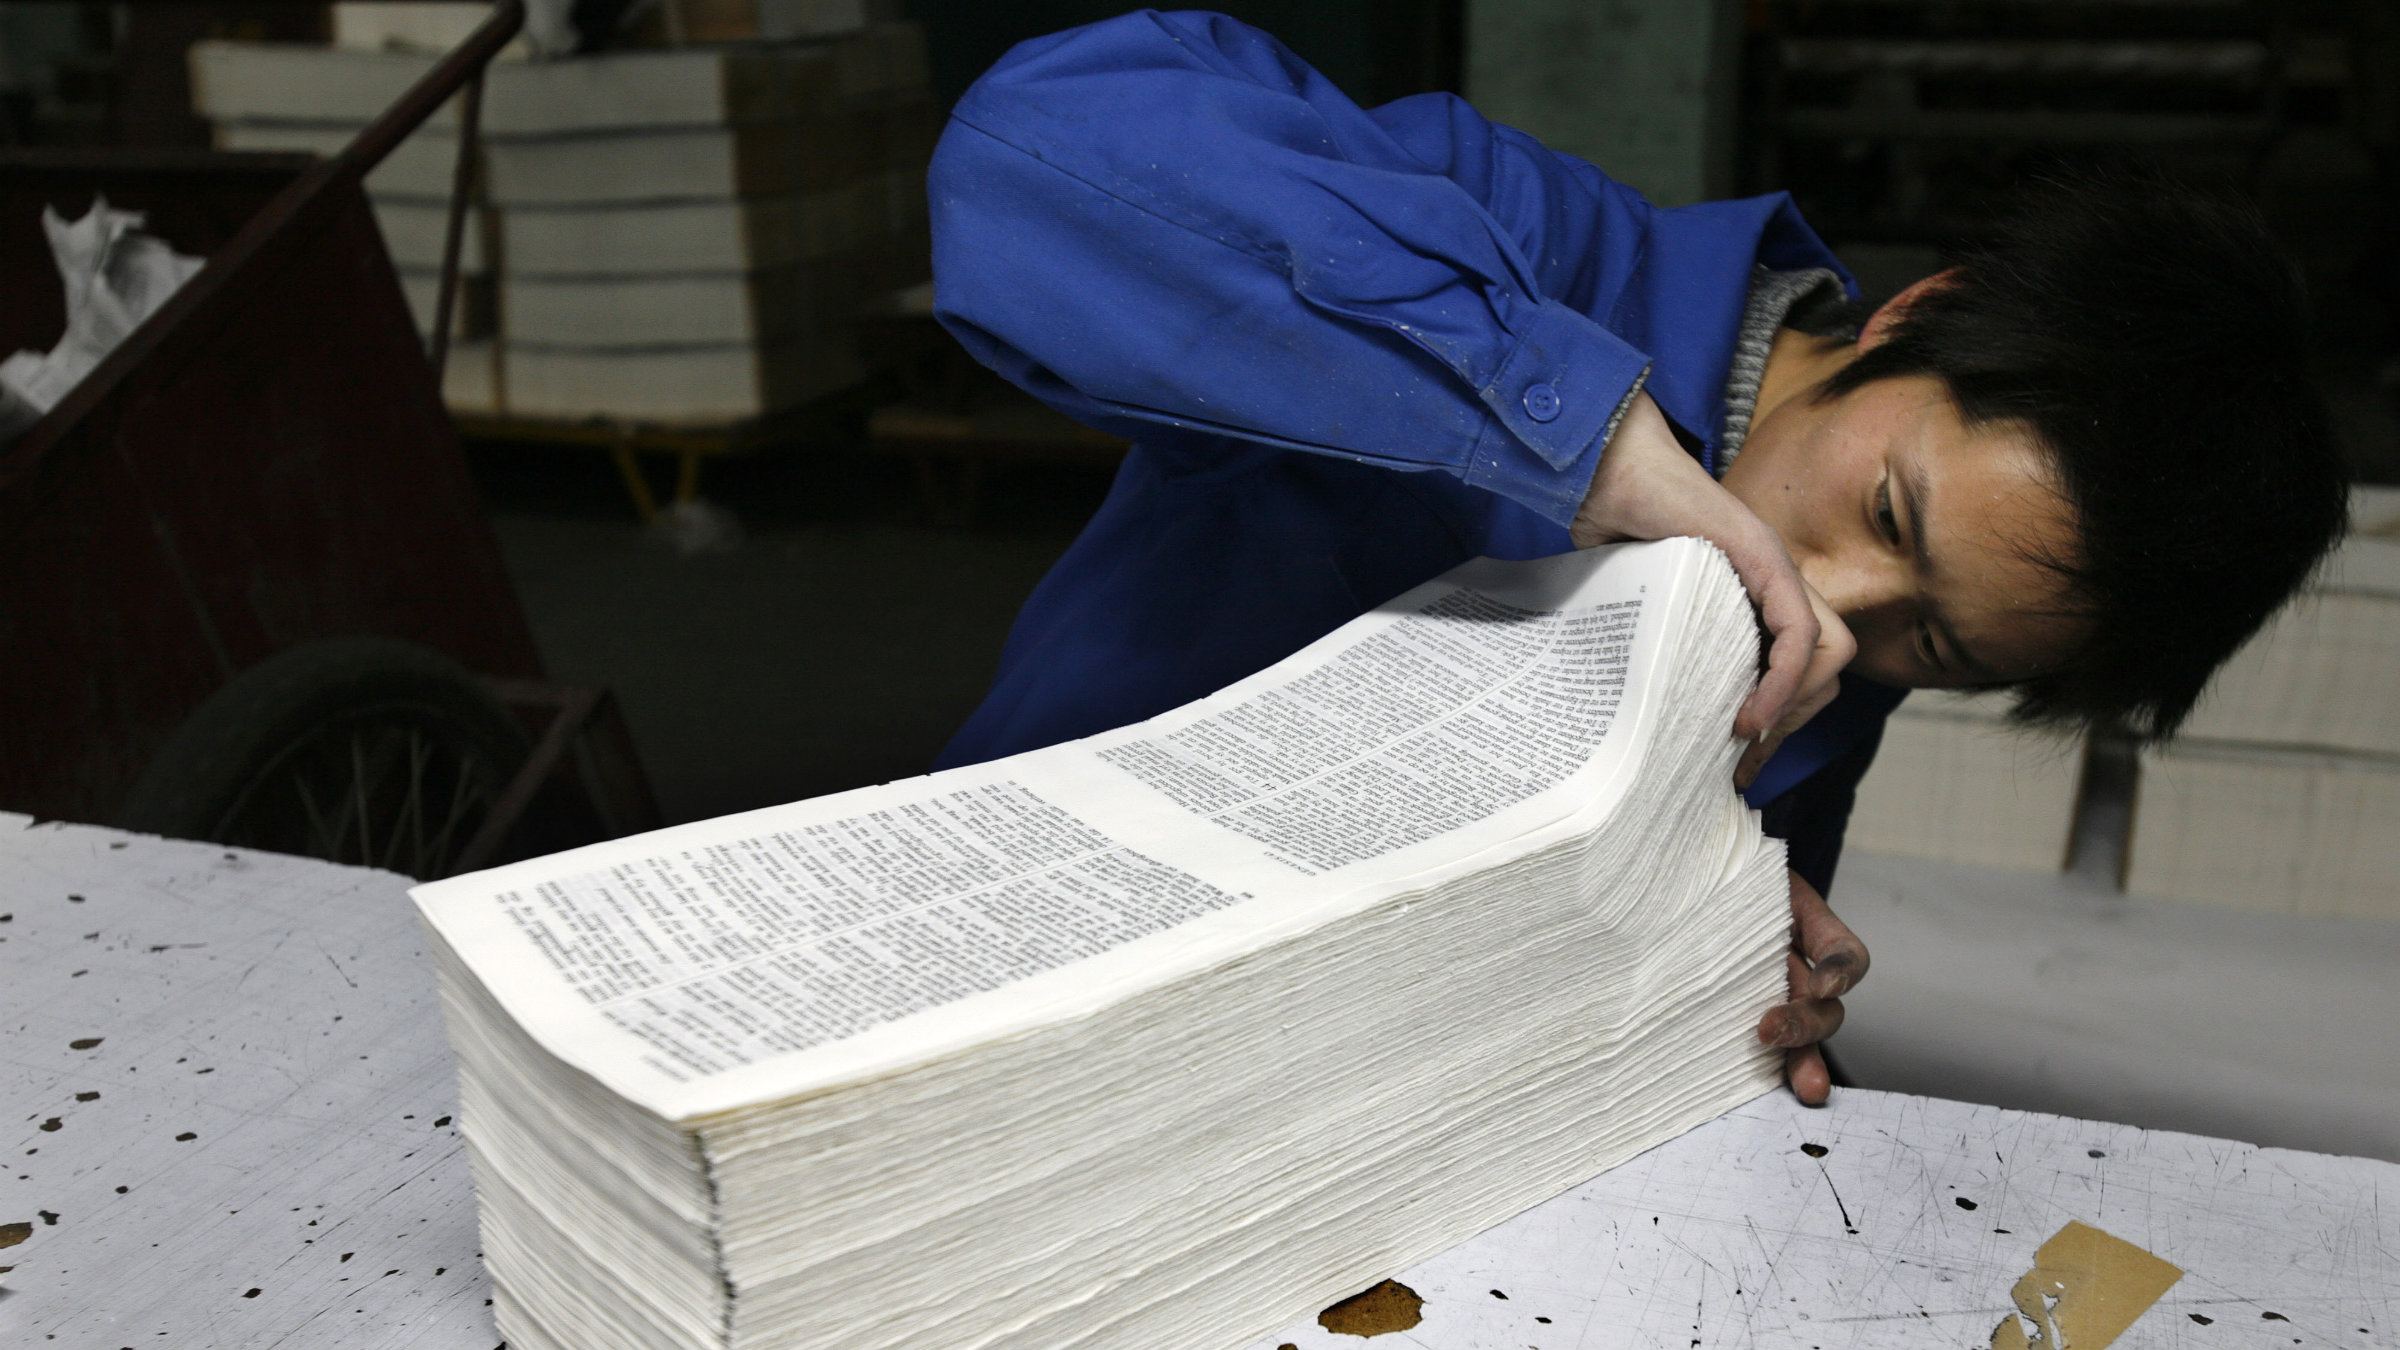 A worker checks for rejects from a batch of newly printed books in the production line at a printing factory.